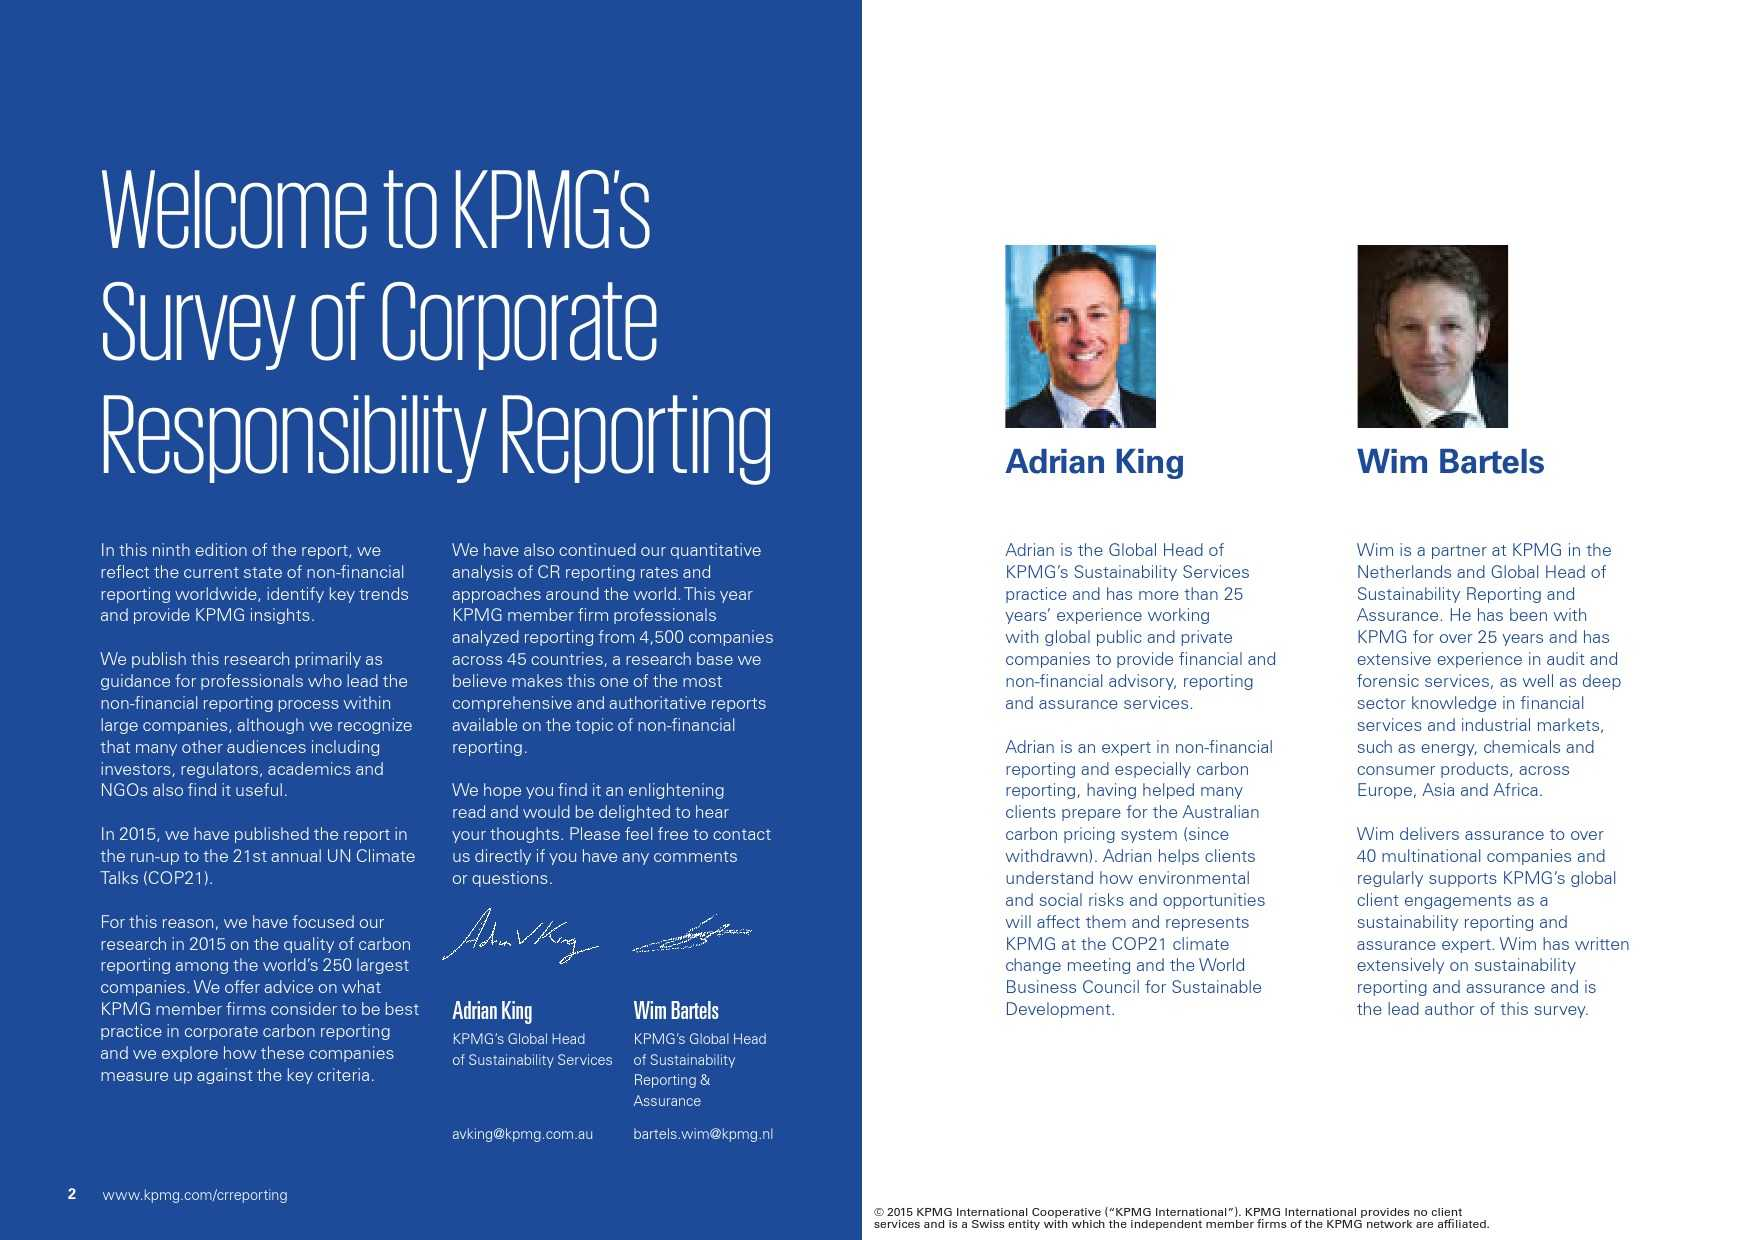 kpmg-international-survey-of-corporate-responsibility-reporting-2015_000002